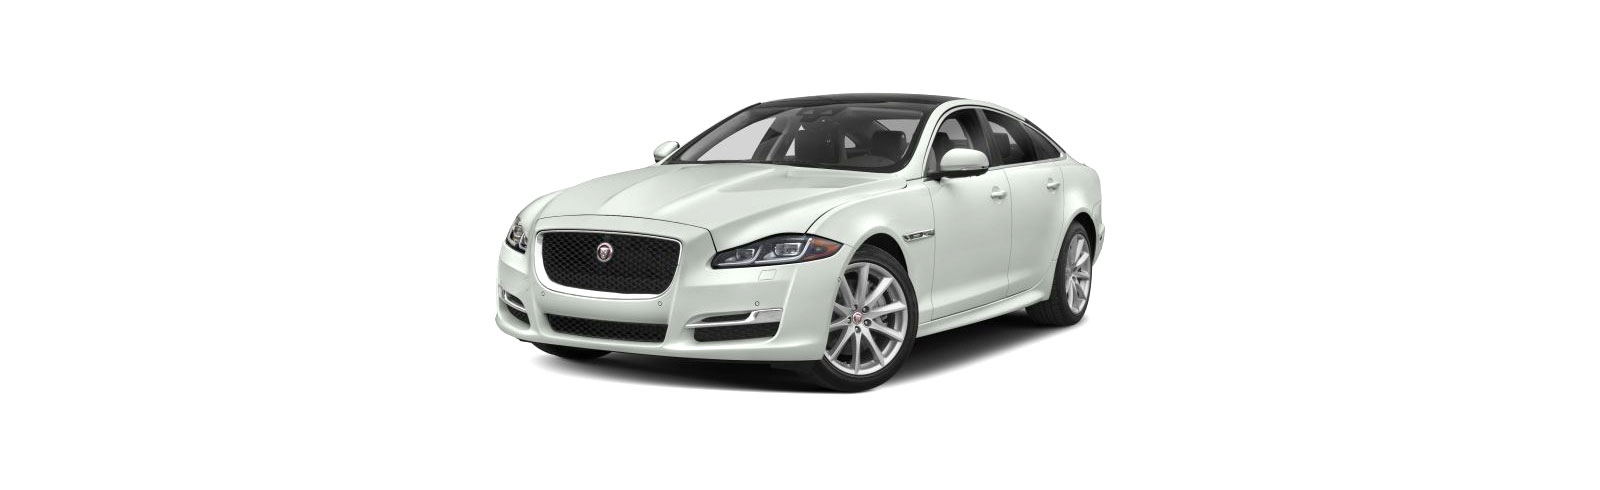 World Cаr jurors enjoy a private peak of the all-electric Jaguar XJ